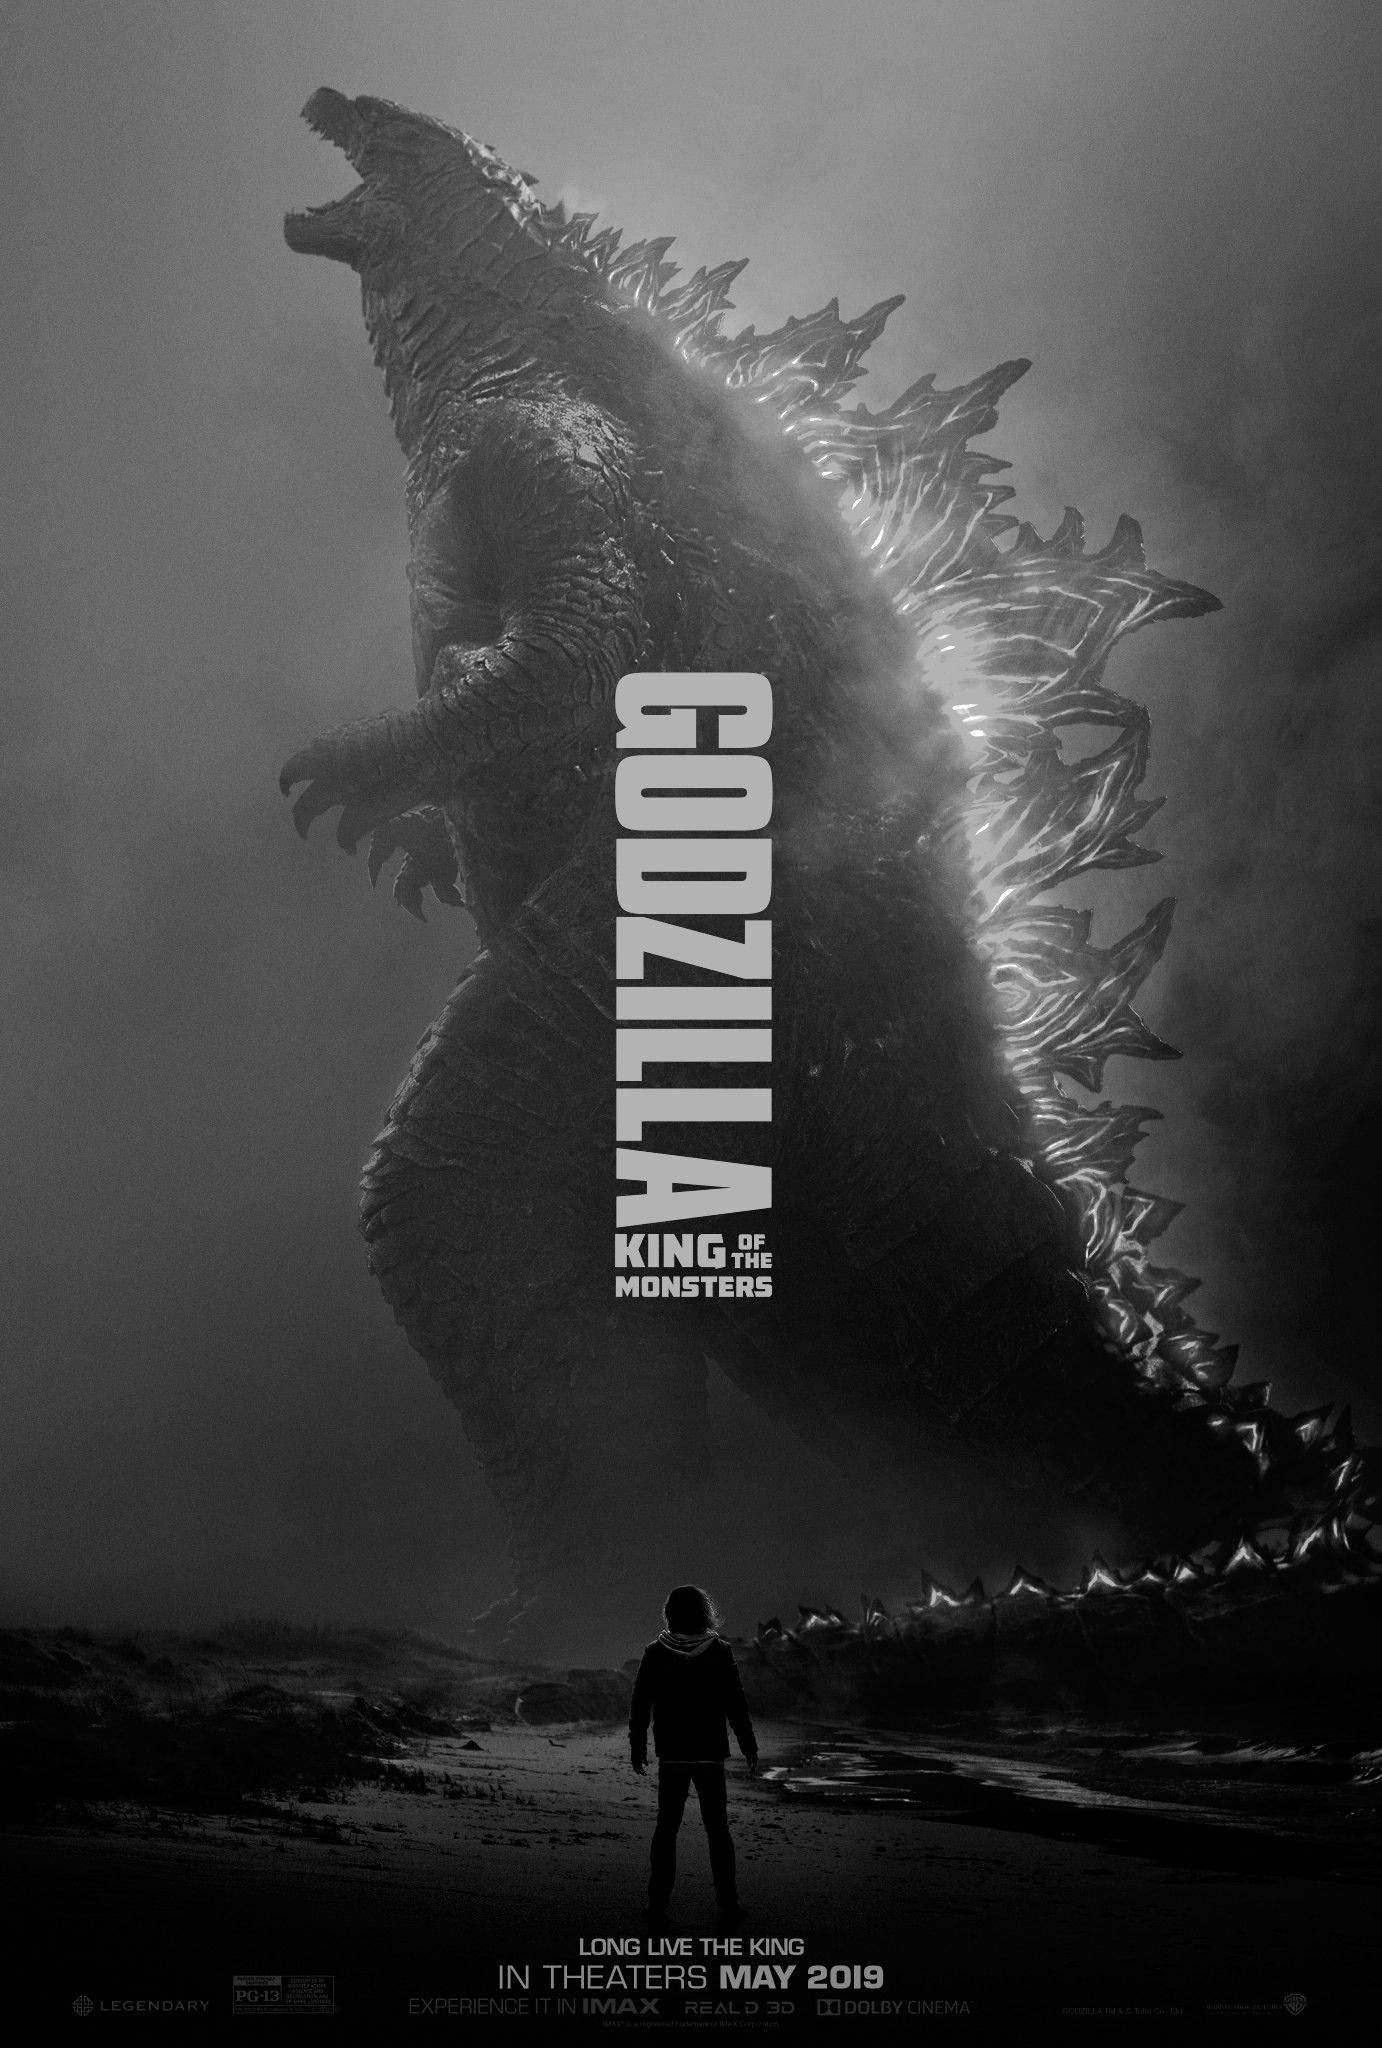 Godzilla Kotm Poster Color Variant Godzilla Great Movies To Watch Full Movies